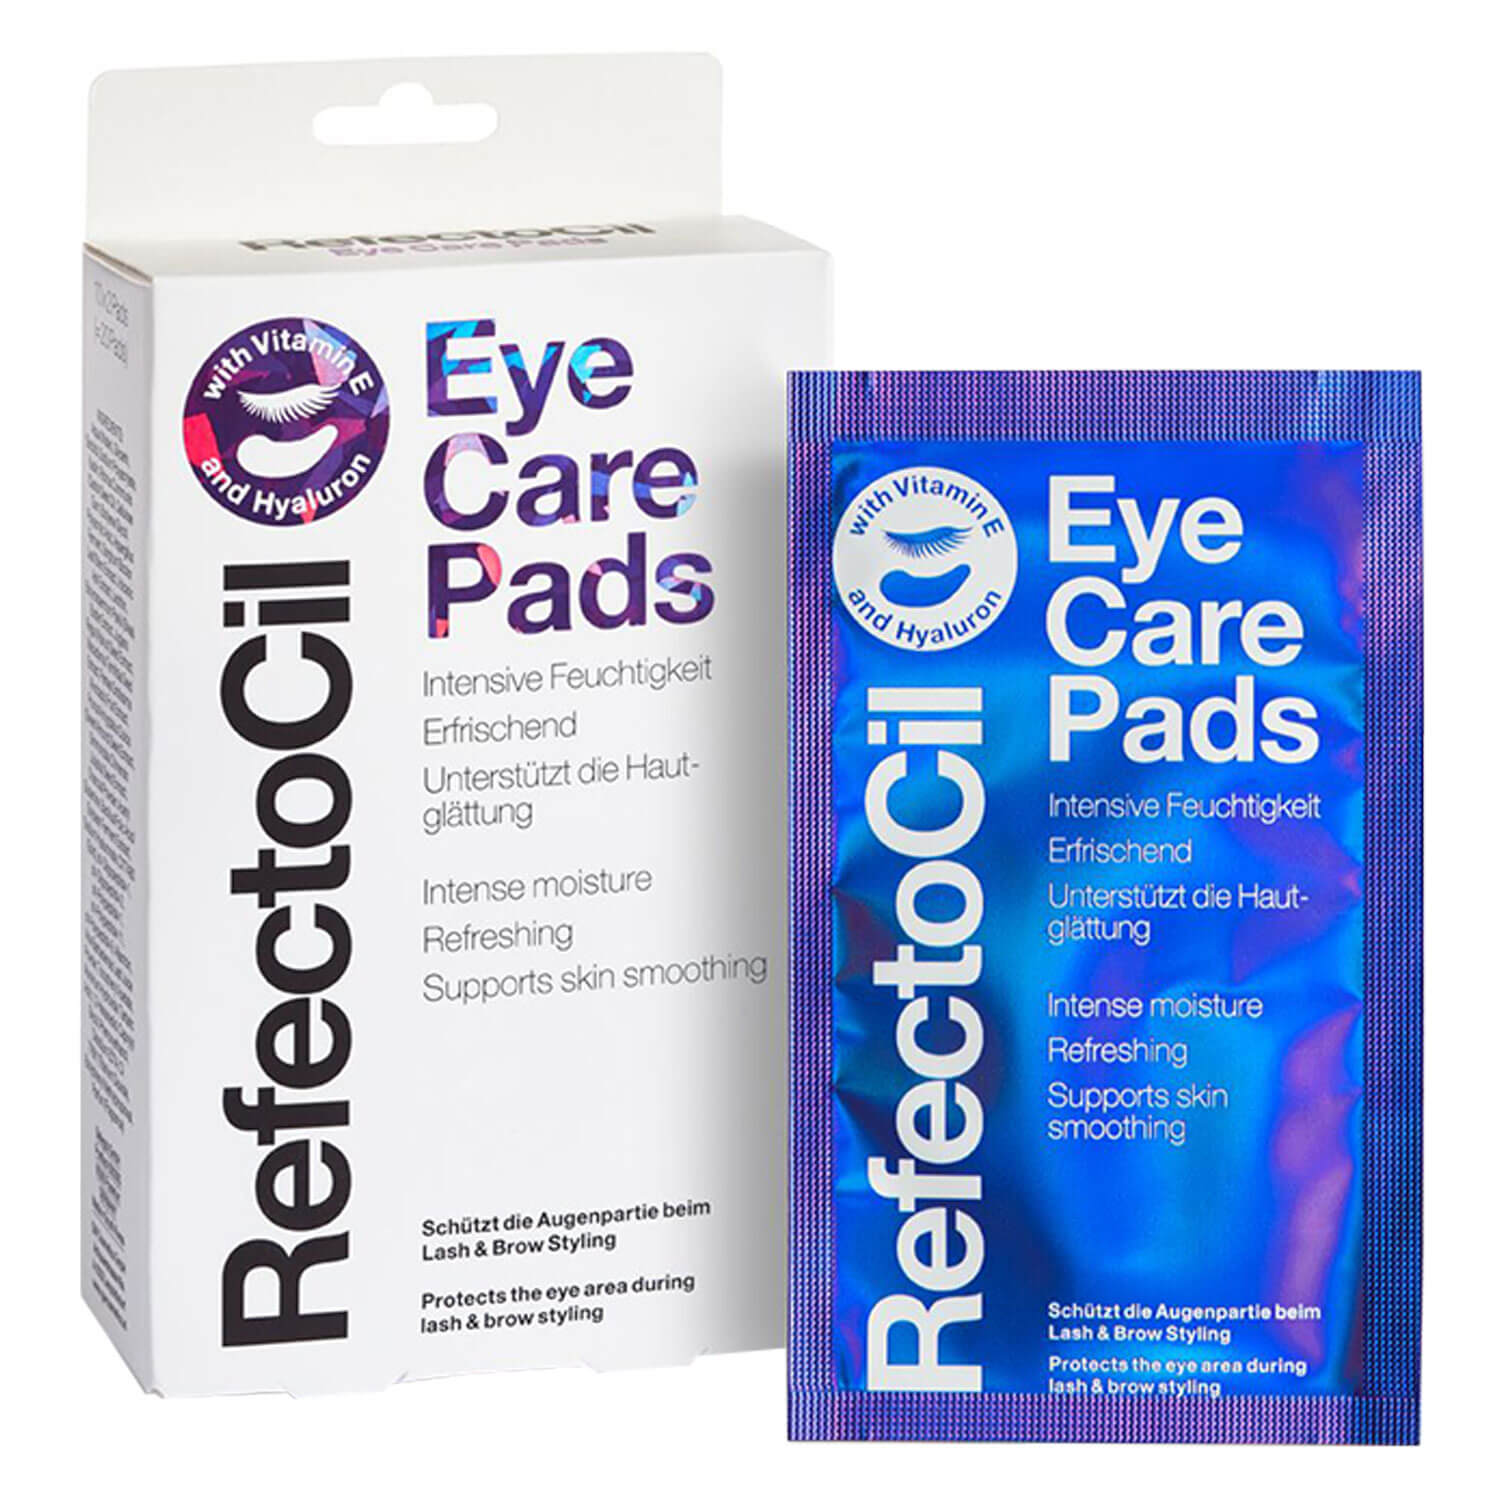 RefectoCil - Eye Care Pads